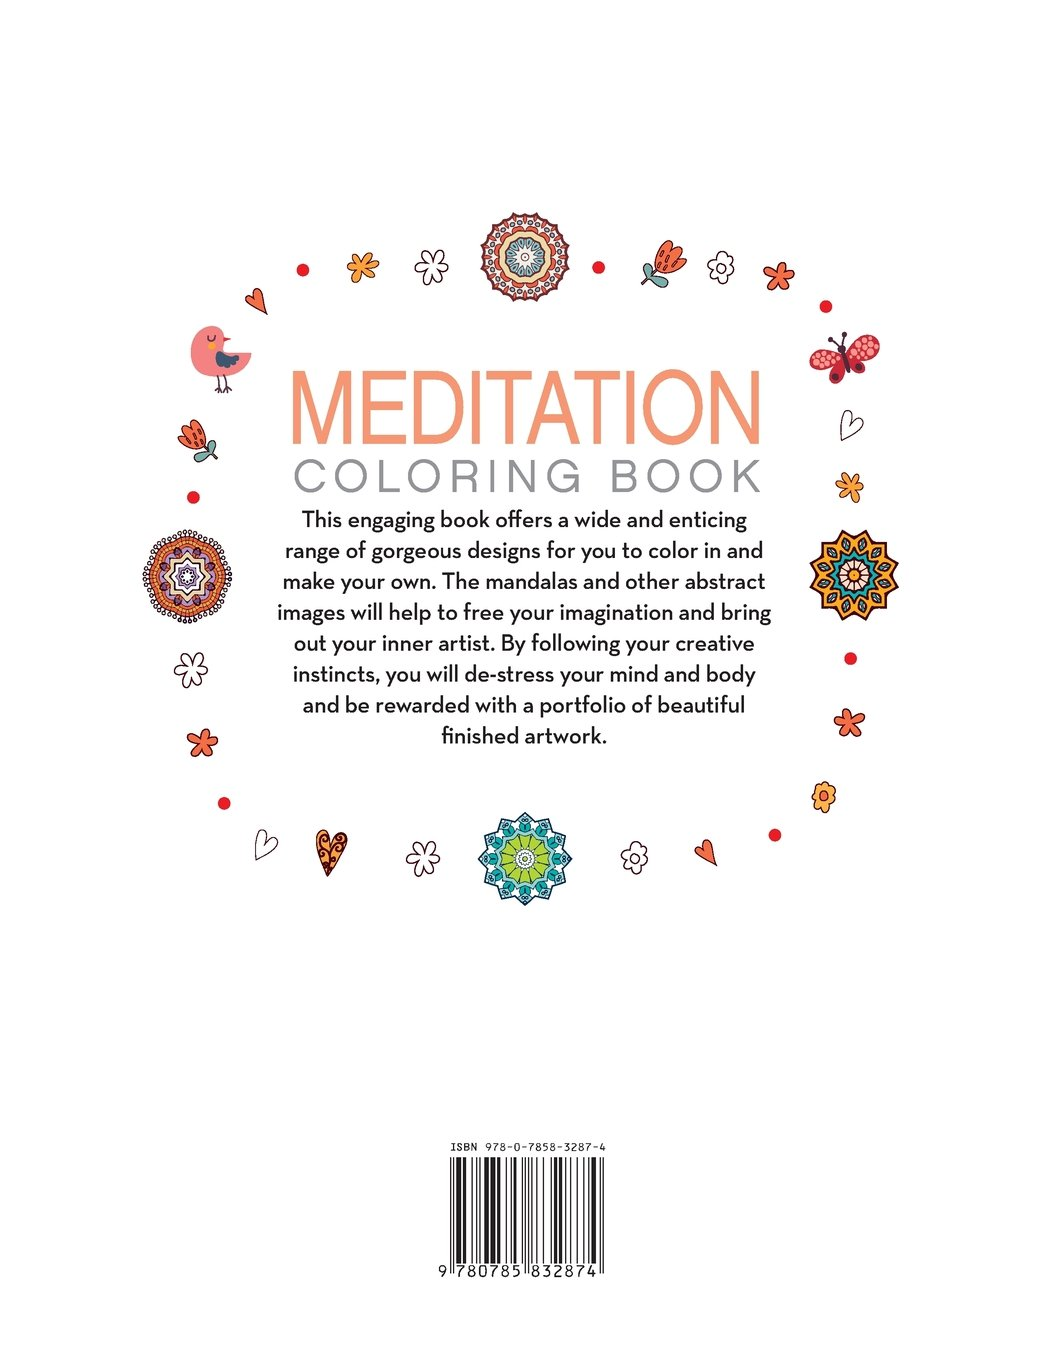 meditation coloring book wonderful images to melt your worries